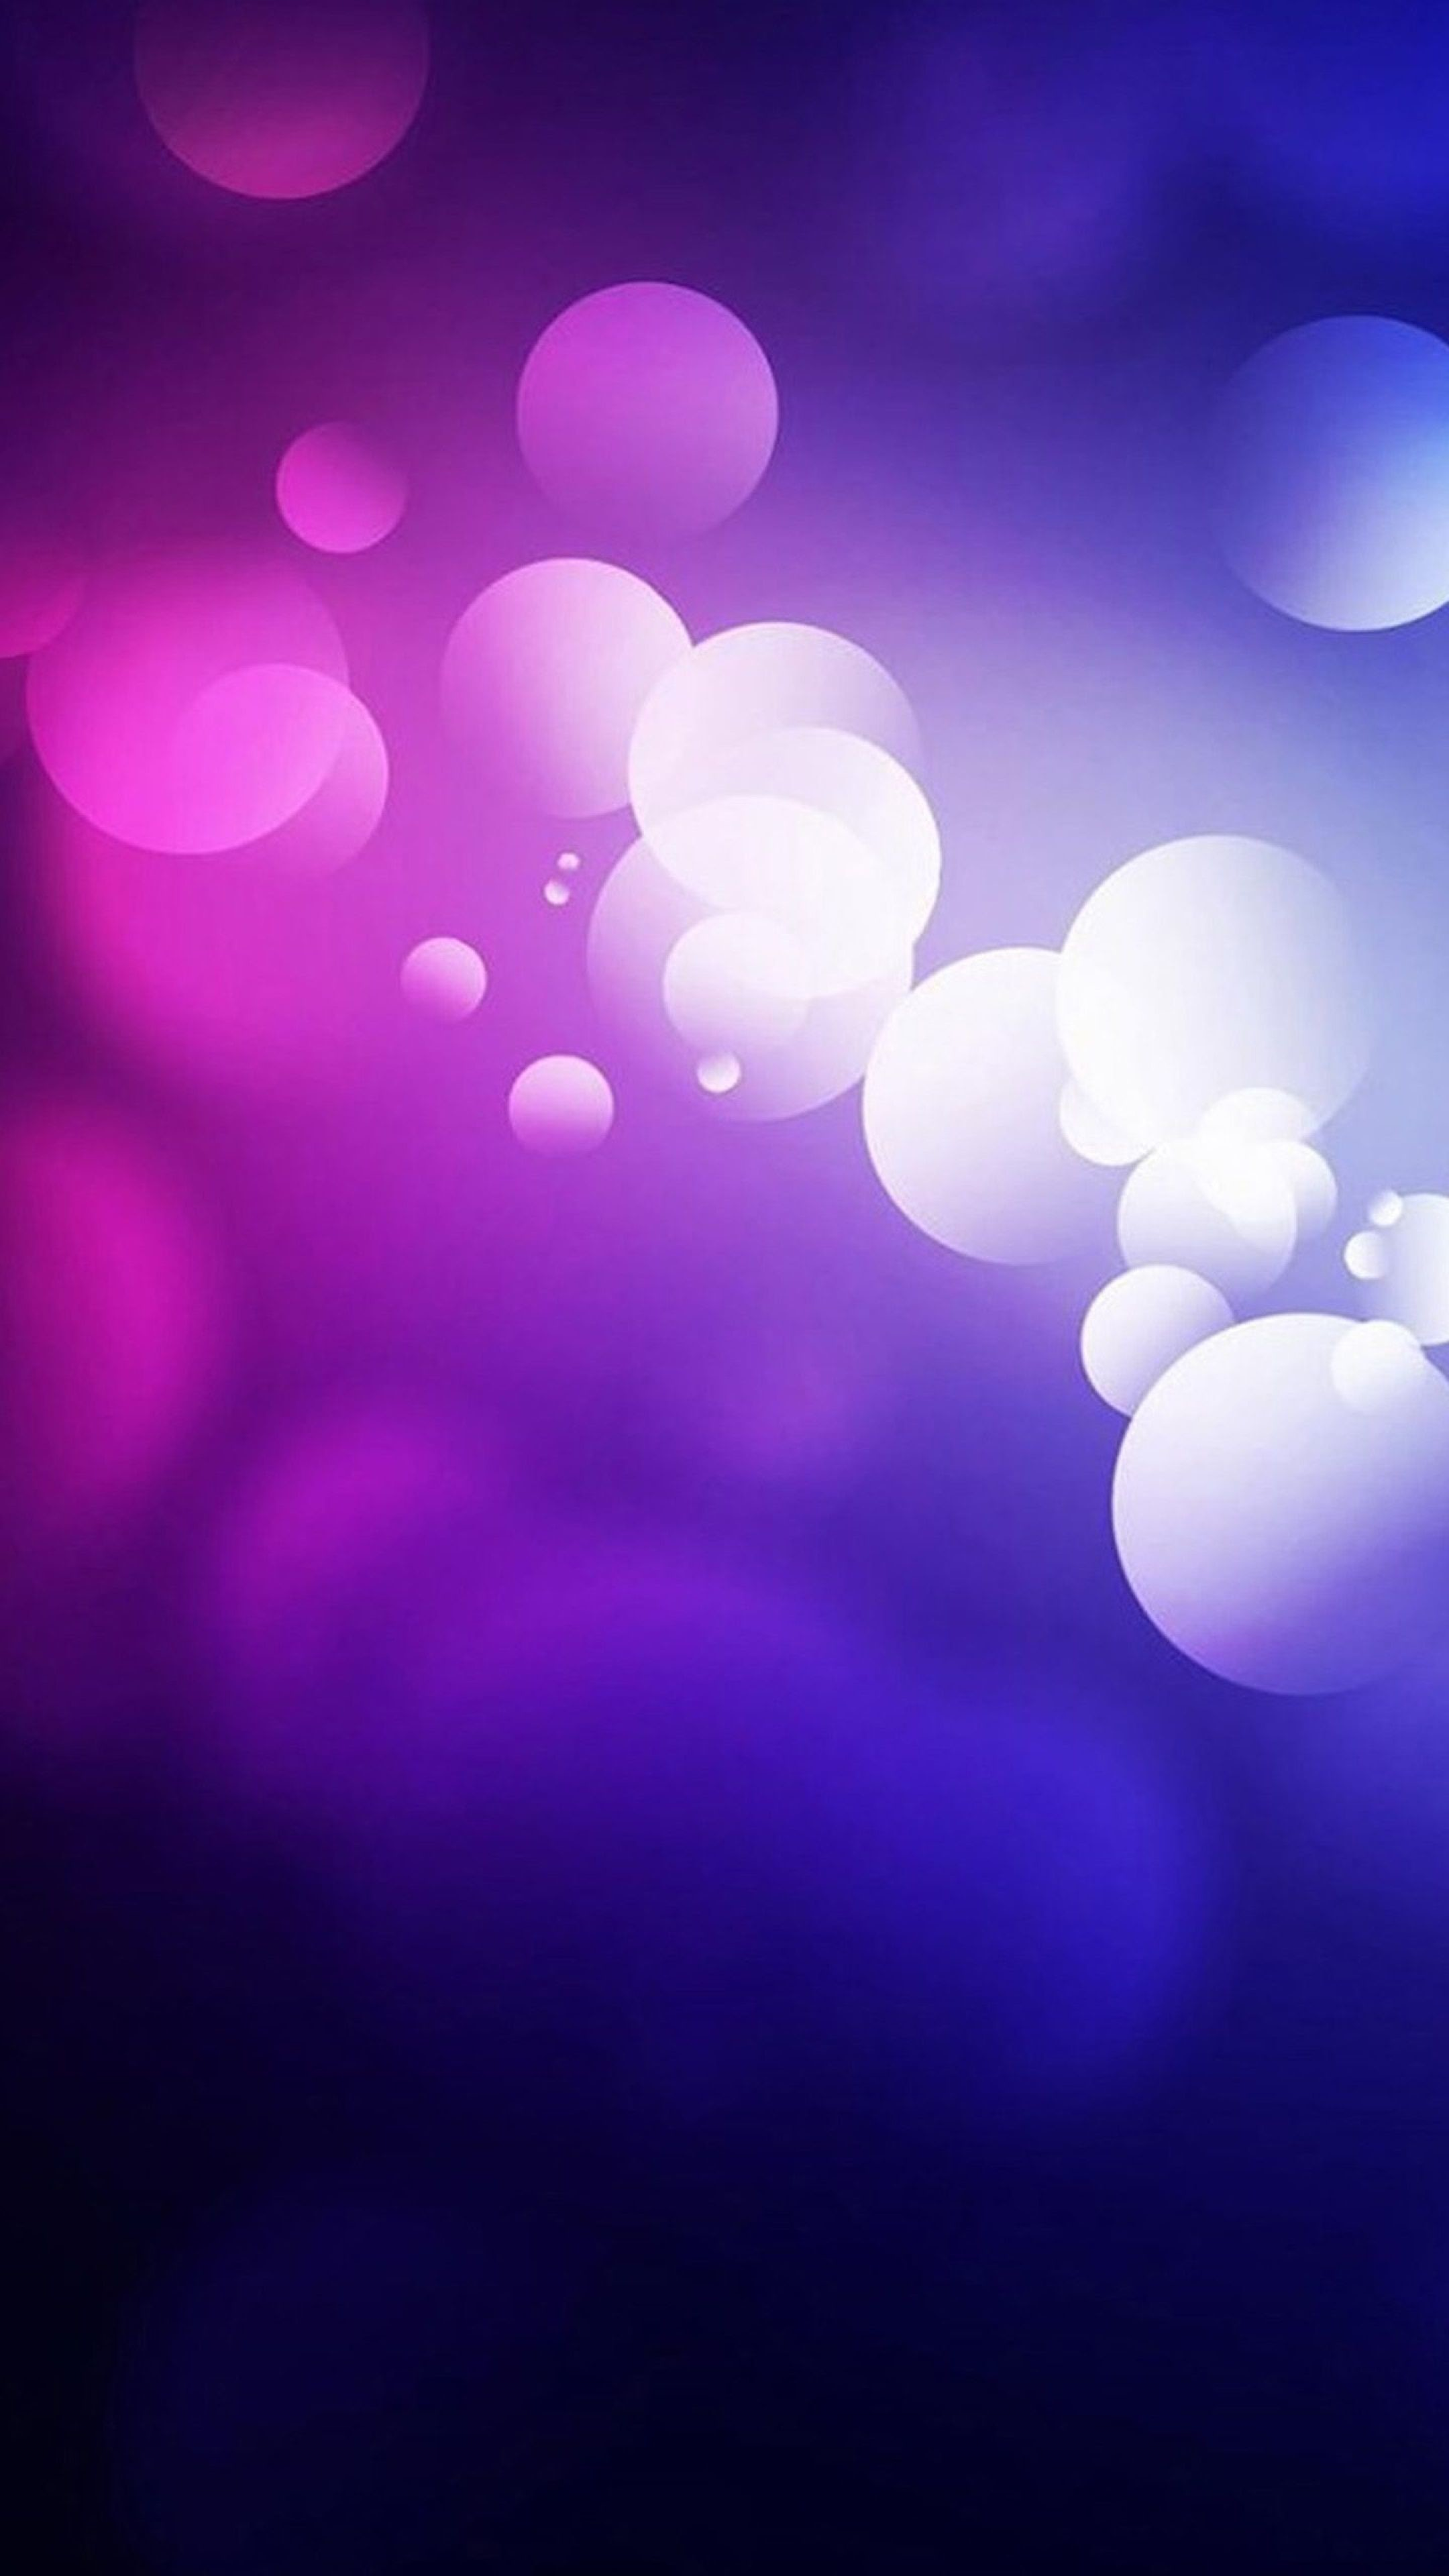 1440×2560 vertical weed wallpaper – photo #3. Purple Abstract Mobile  Background, Picture, Image